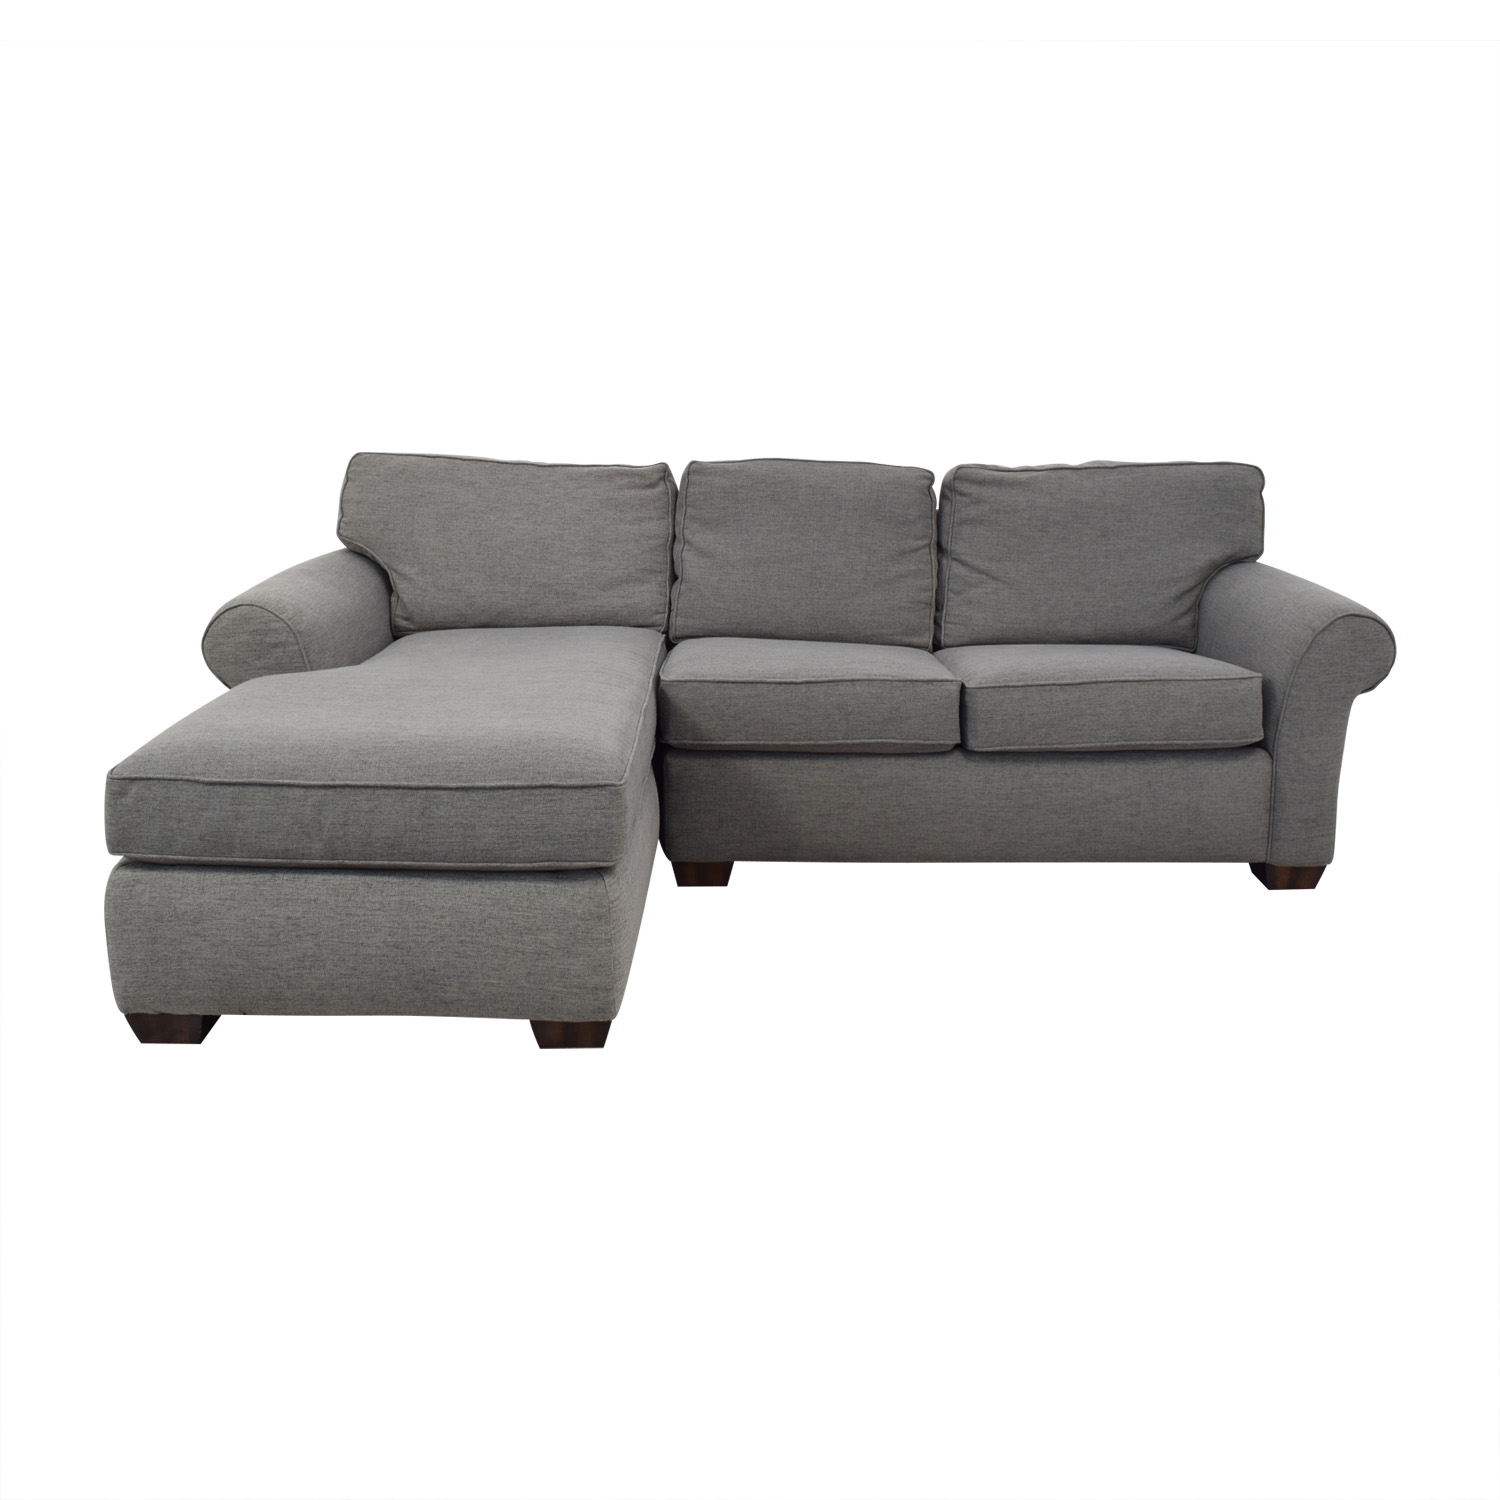 buy Flexsteel Flexsteel Grey Sectional Sofa with Chaise online